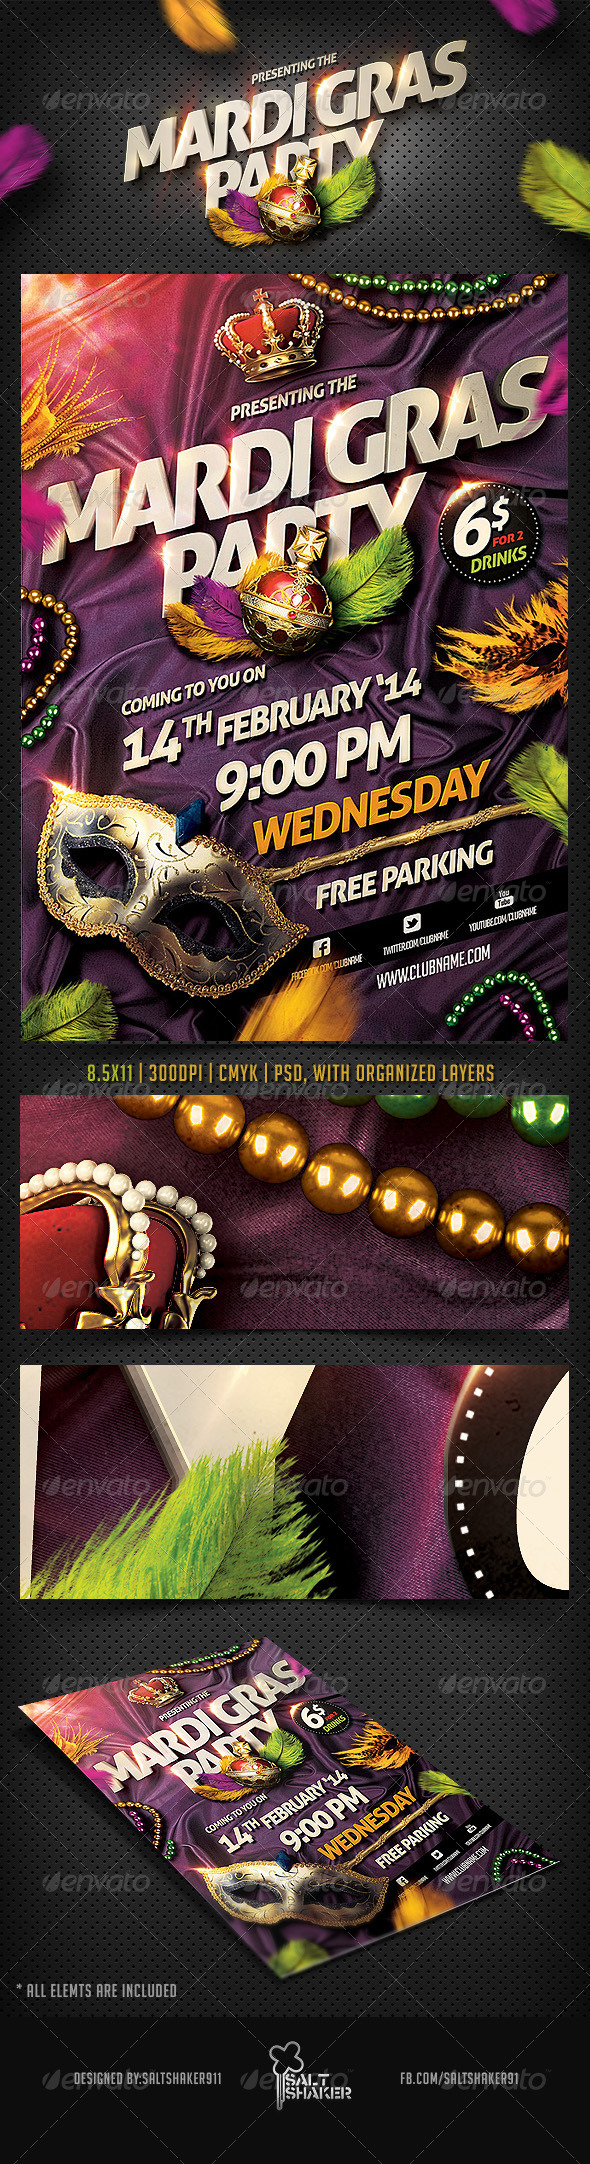 Mardi Gras Carnival Flyer - Clubs & Parties Events